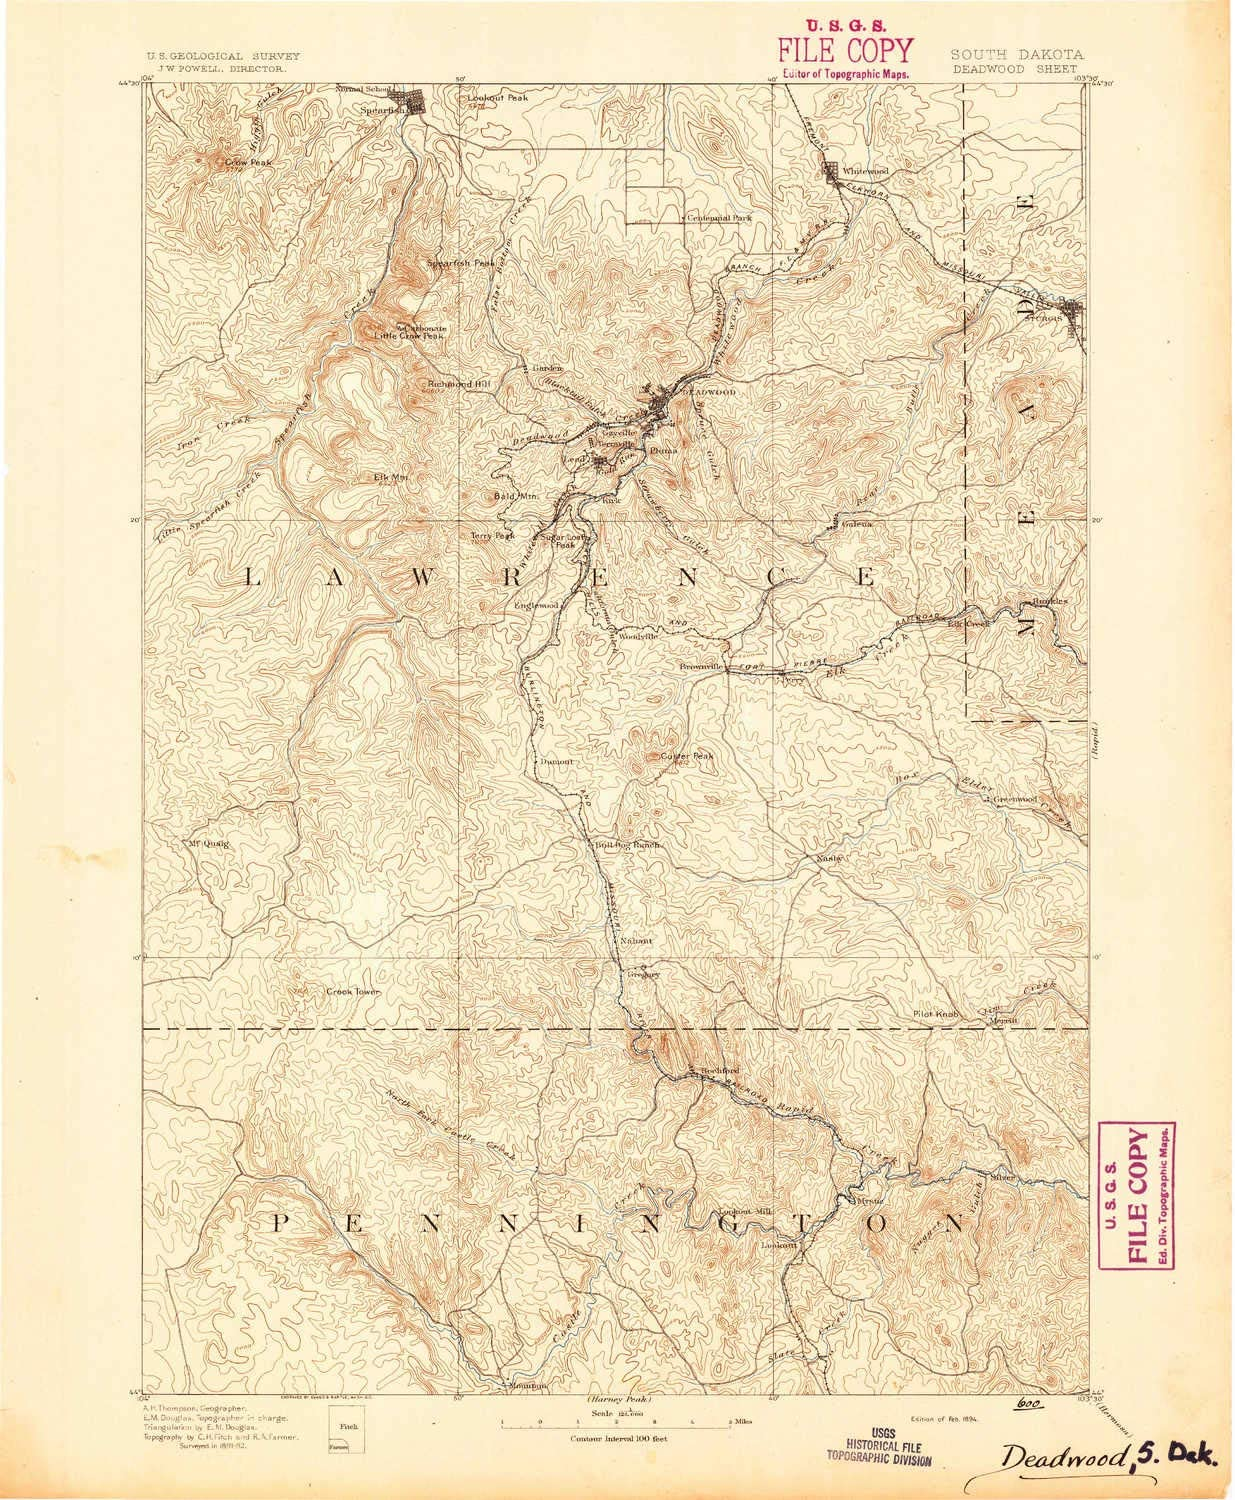 30 X 30 Minute Historical 1894 YellowMaps Deadwood SD topo map 20 x 16.5 in 1:125000 Scale